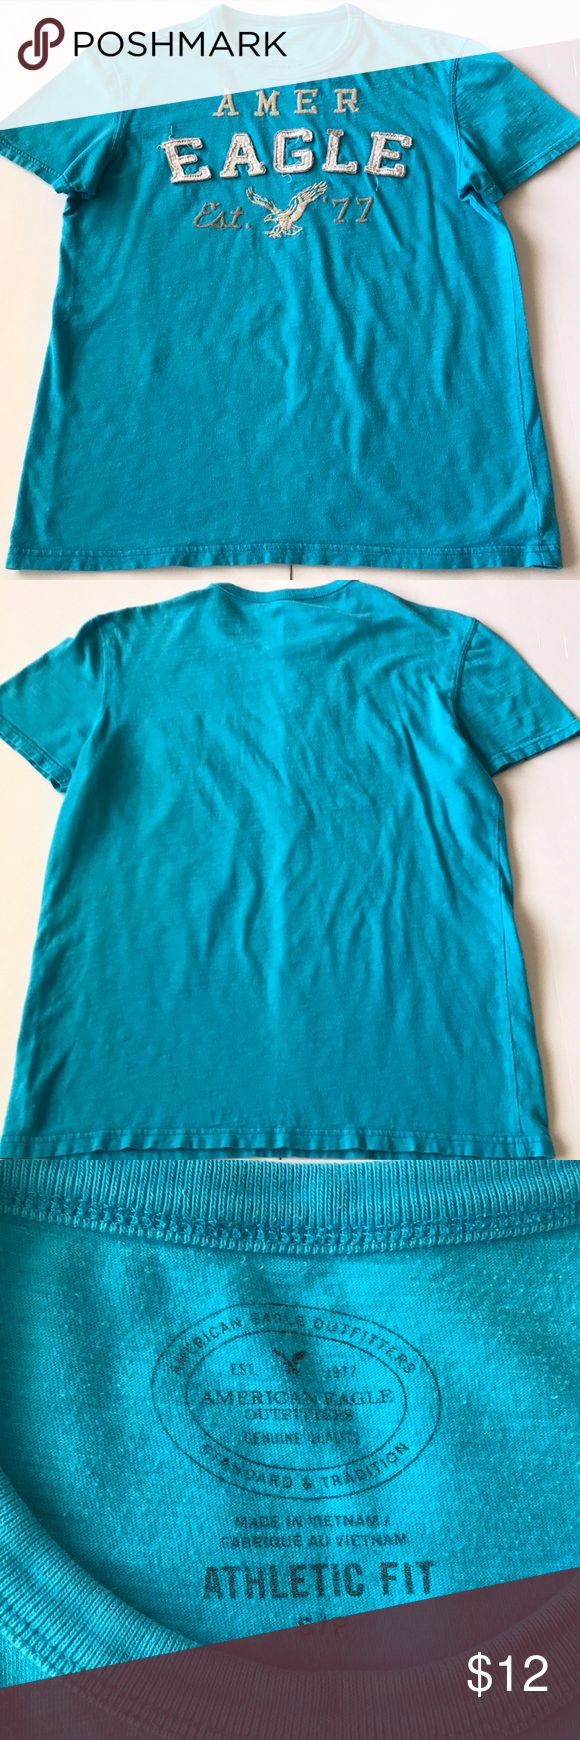 American Eagle shirt Aqua blue tshirt with embroidered logo on front American Eagle Outfitters Shirts Tees - Short Sleeve